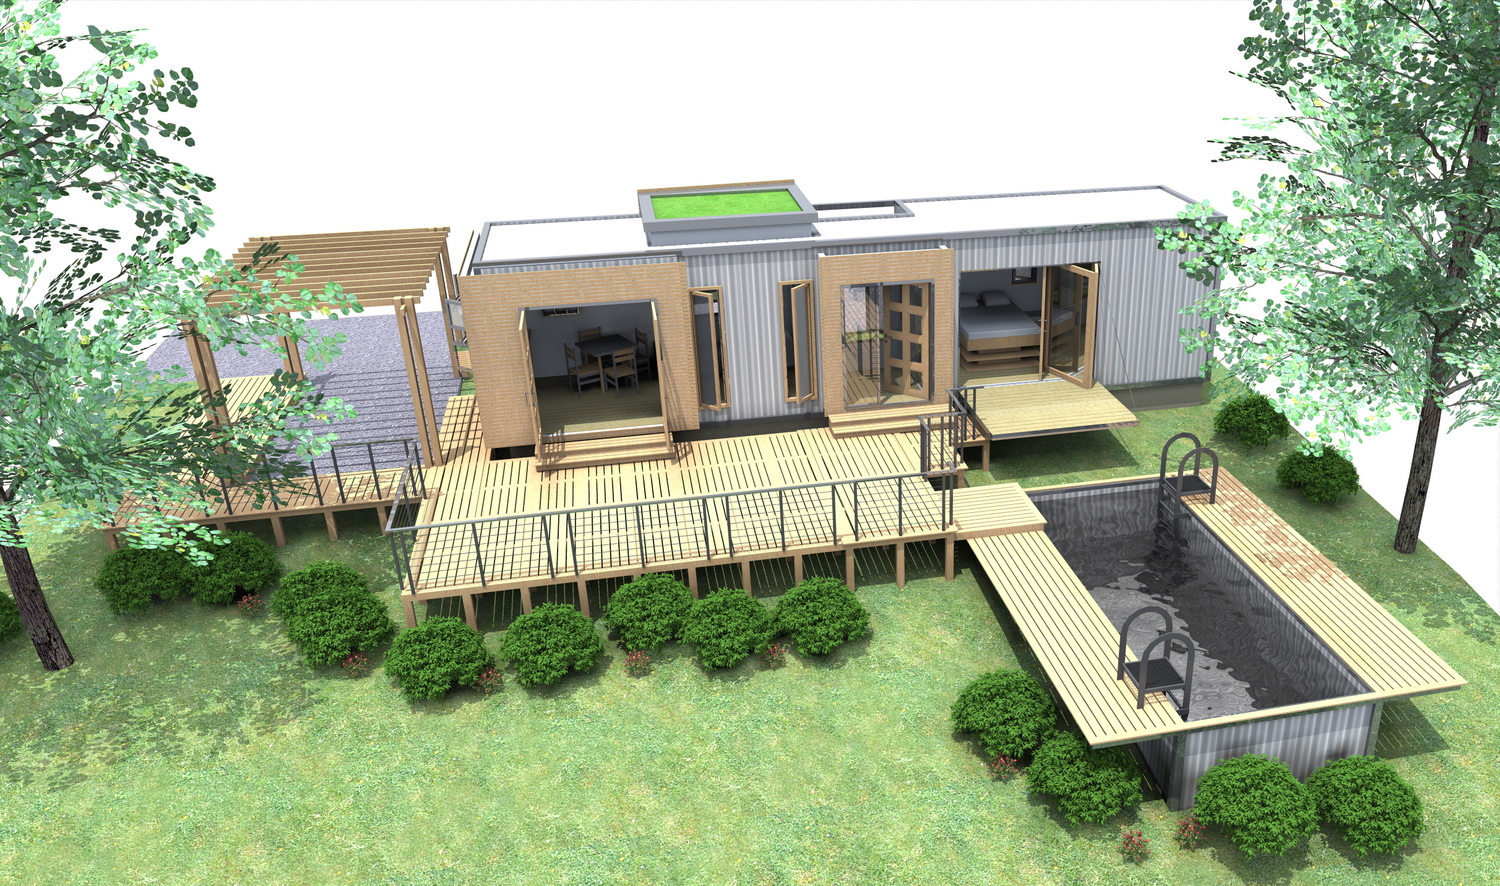 Mobiles home container homes tiny houses container houses pigs design container pools eco - Cargo container home builders ...